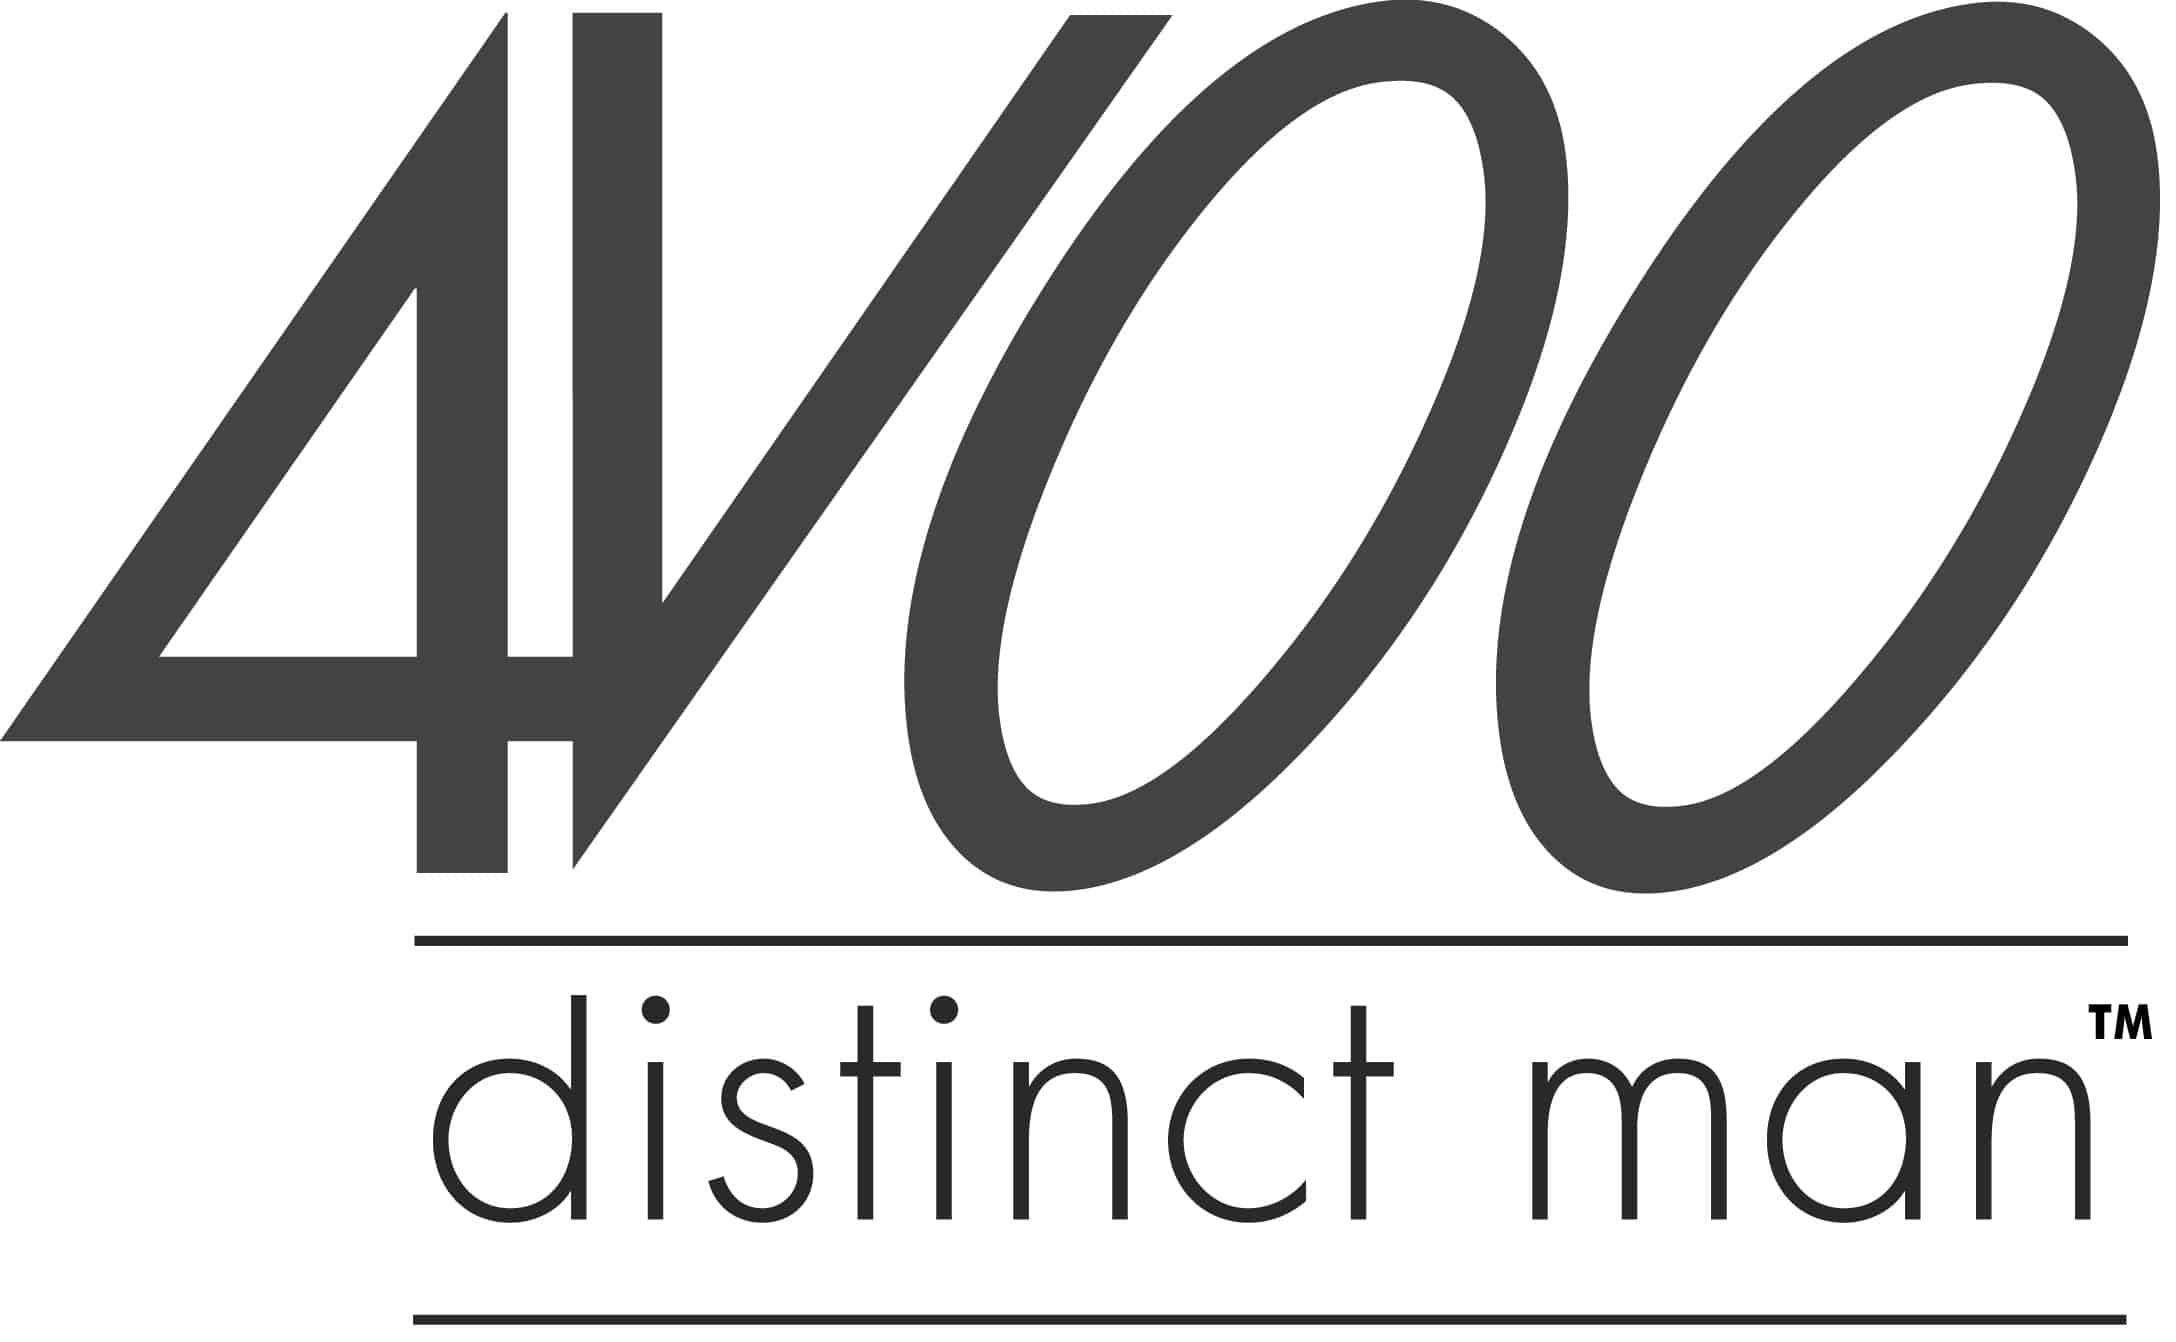 logo 4voo distinct man